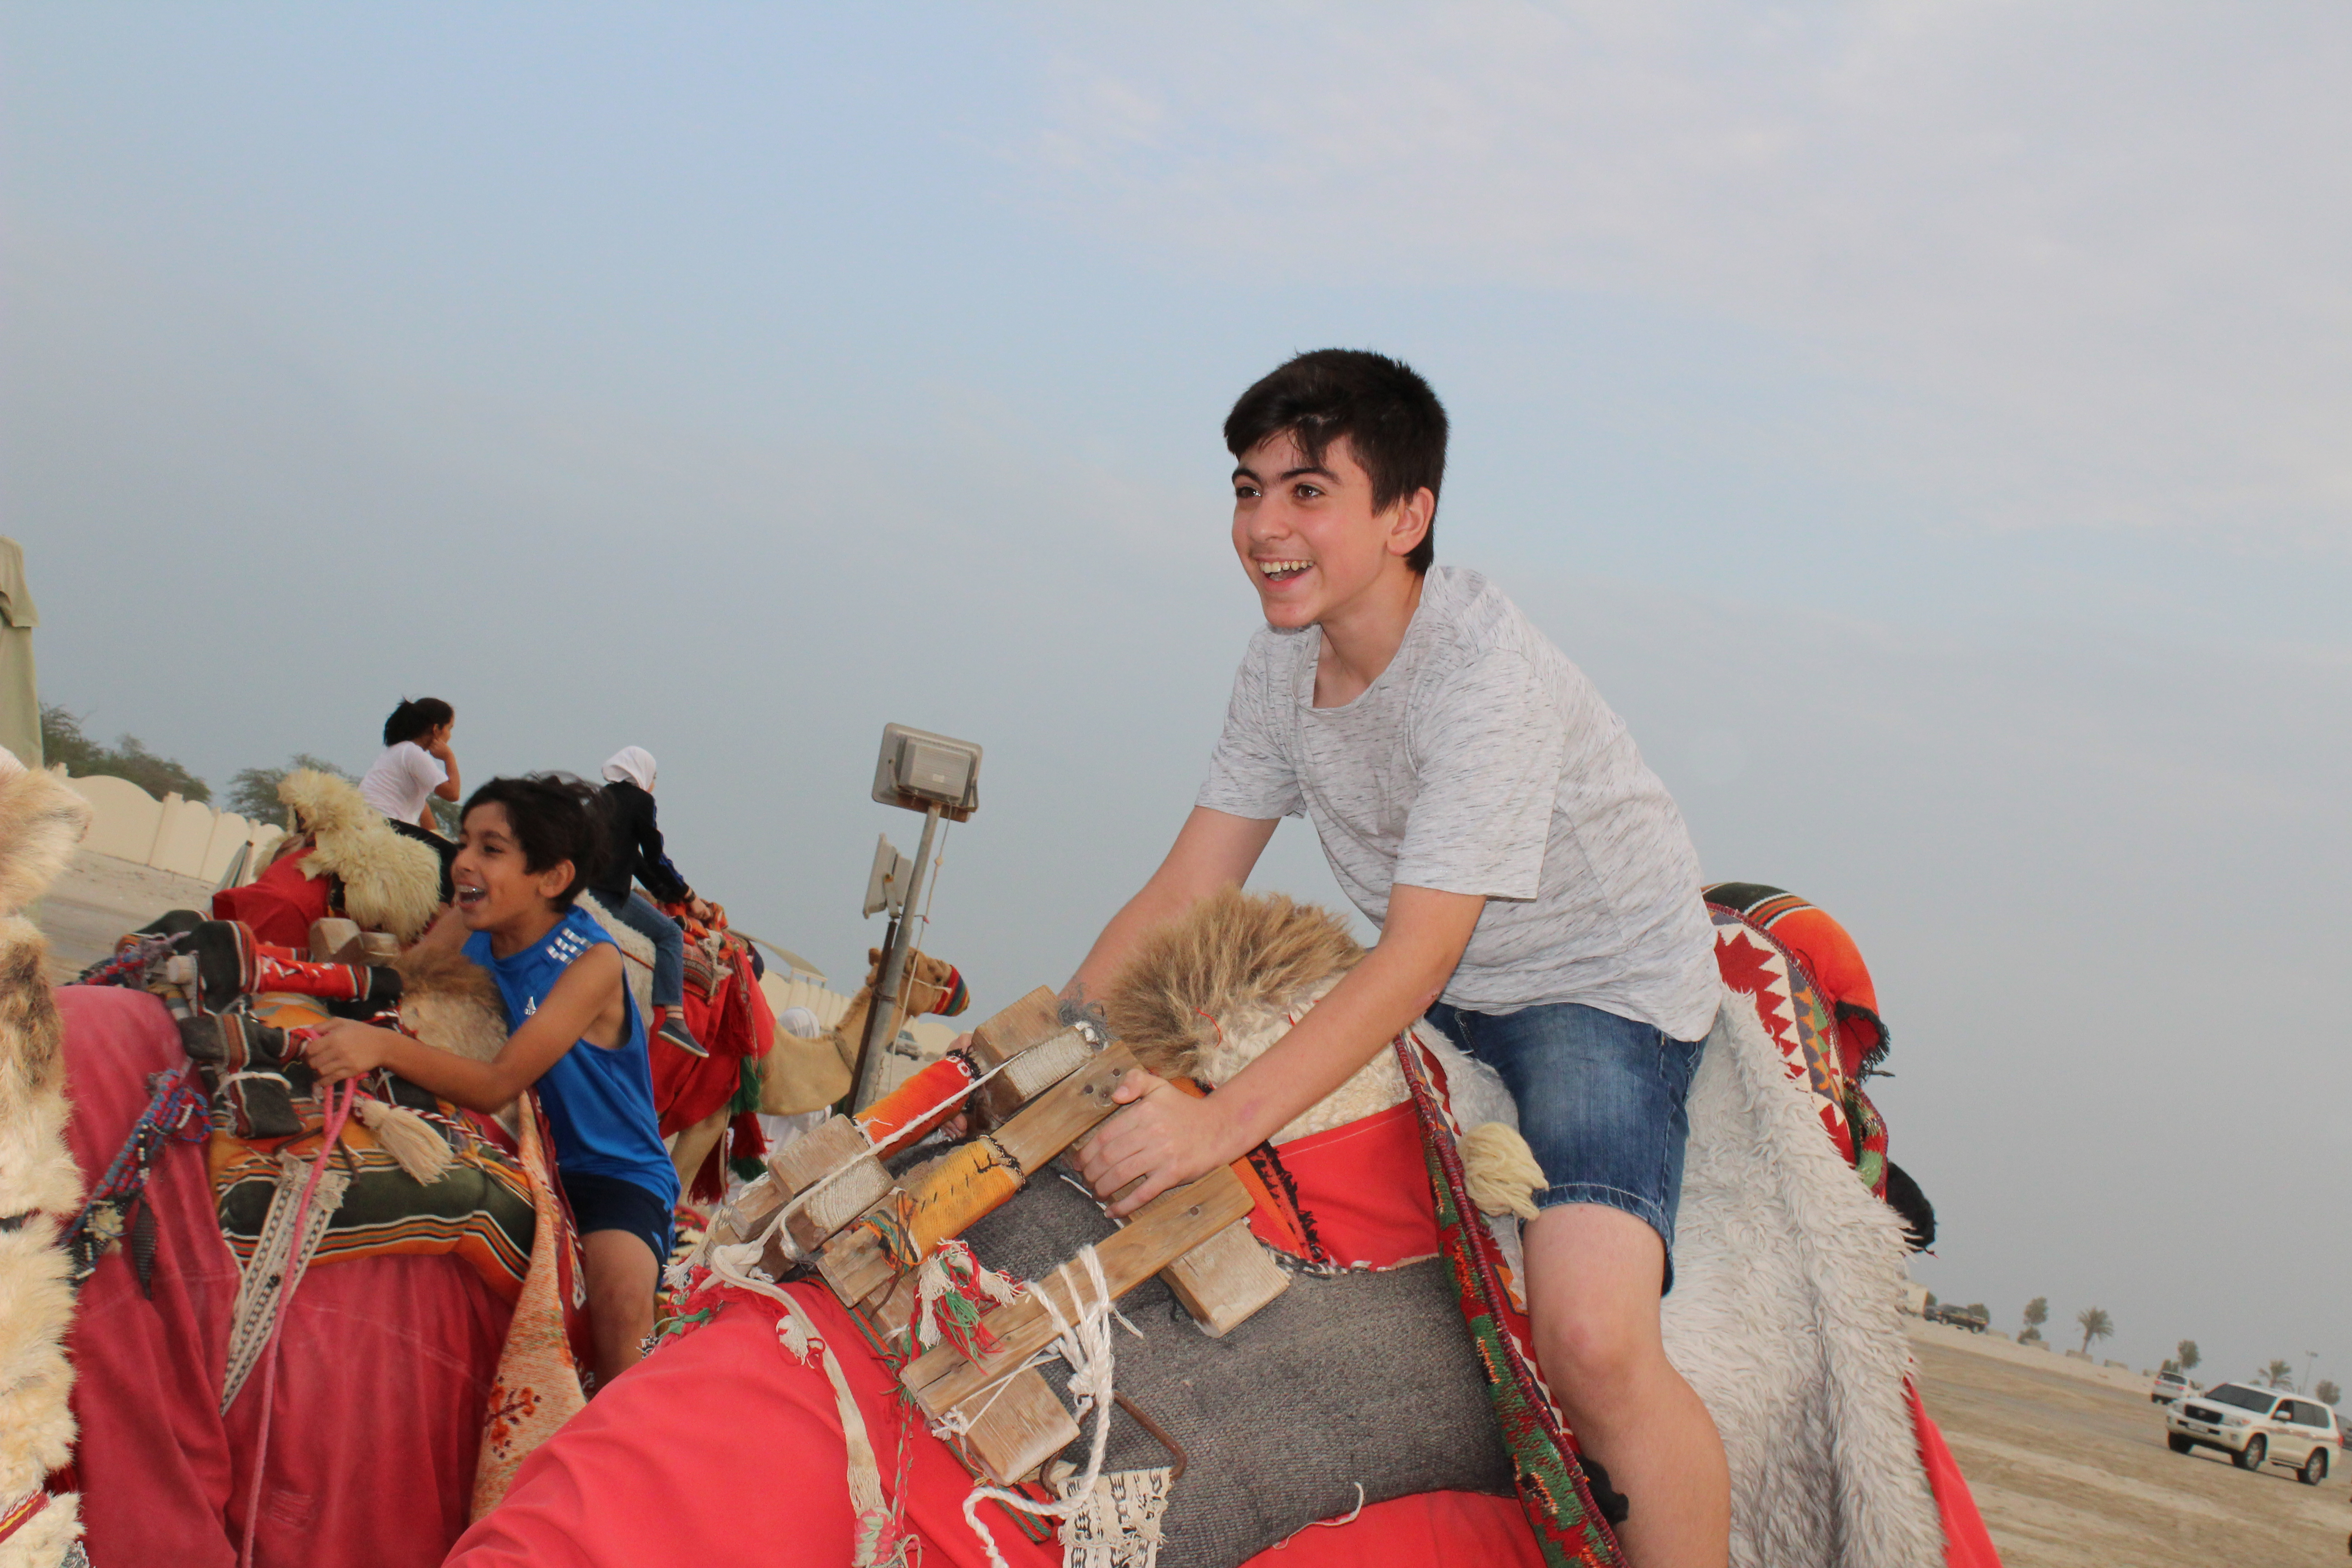 students laughing on back of camel